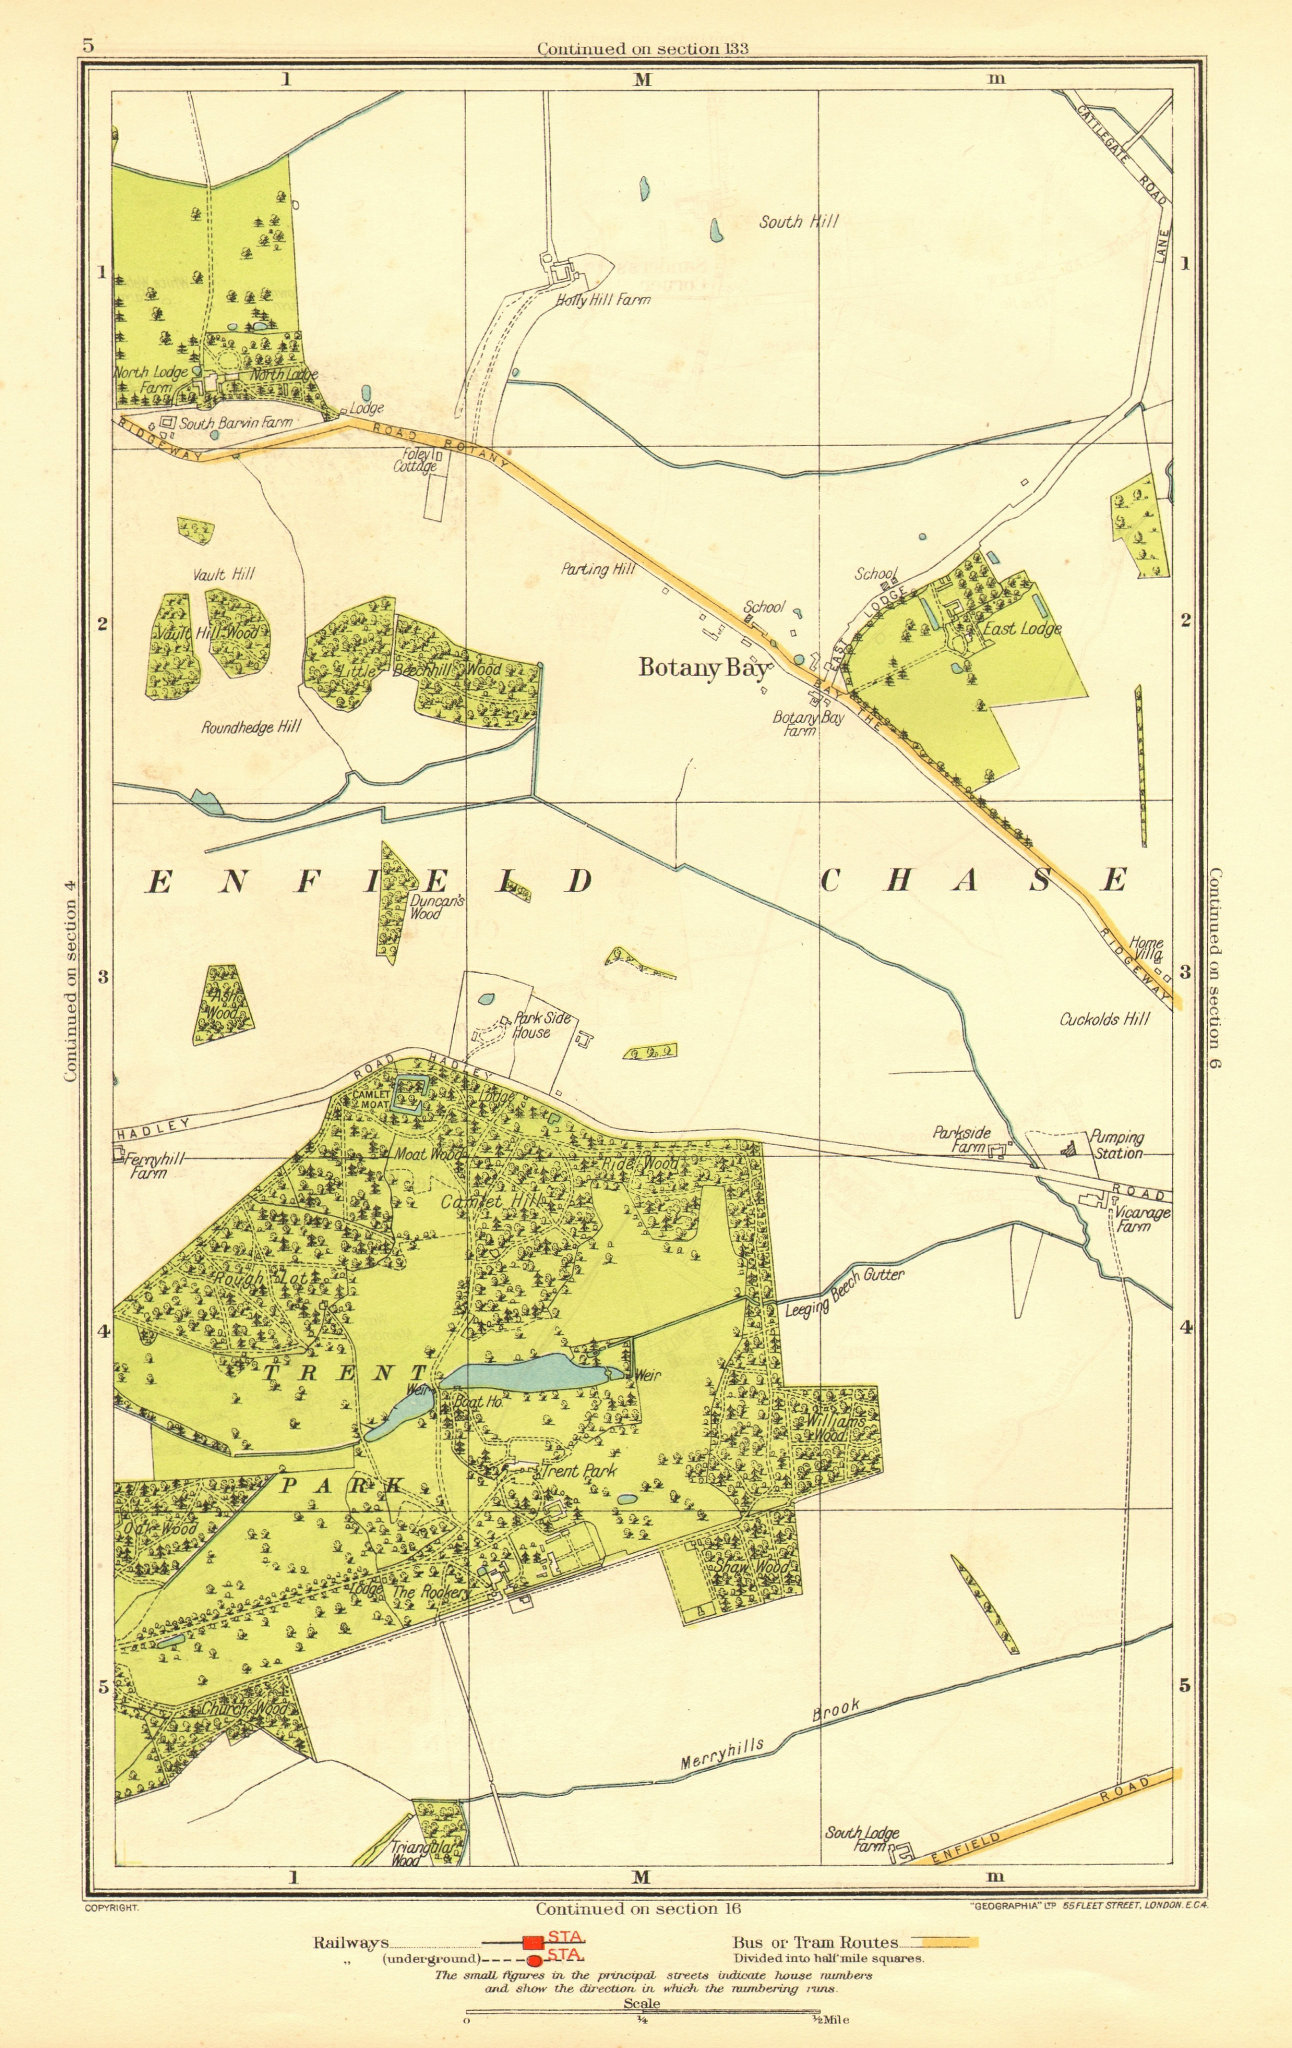 Associate Product ENFIELD CHASE. Botany Bay Trent Park Southgate East Barnet 1937 old map